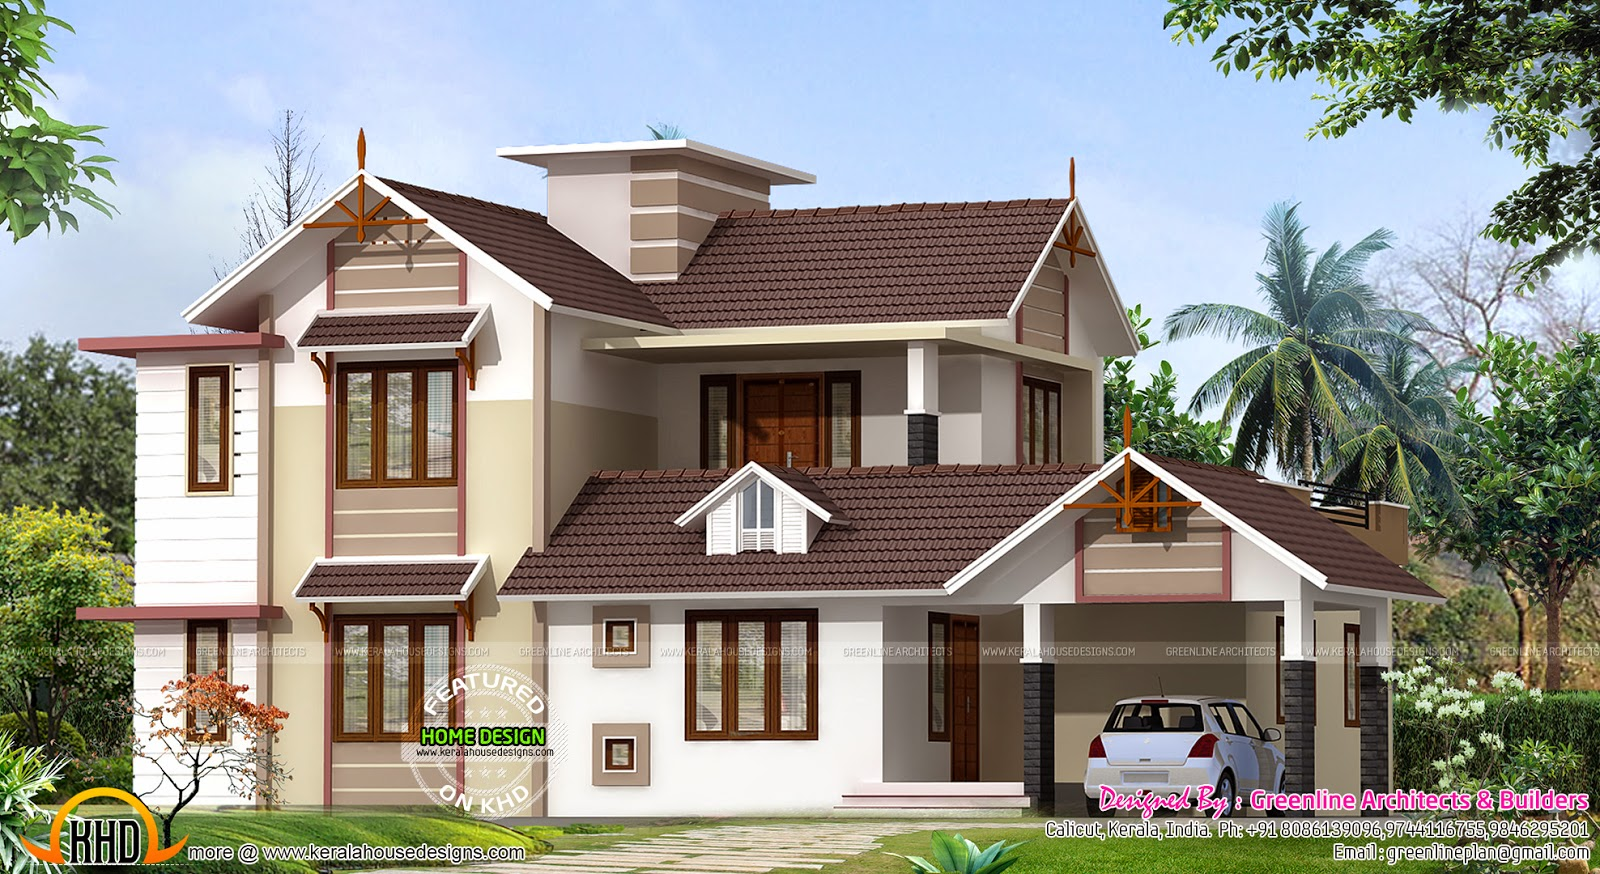 2400 sq ft new house design kerala home design and floor for House plans and designs